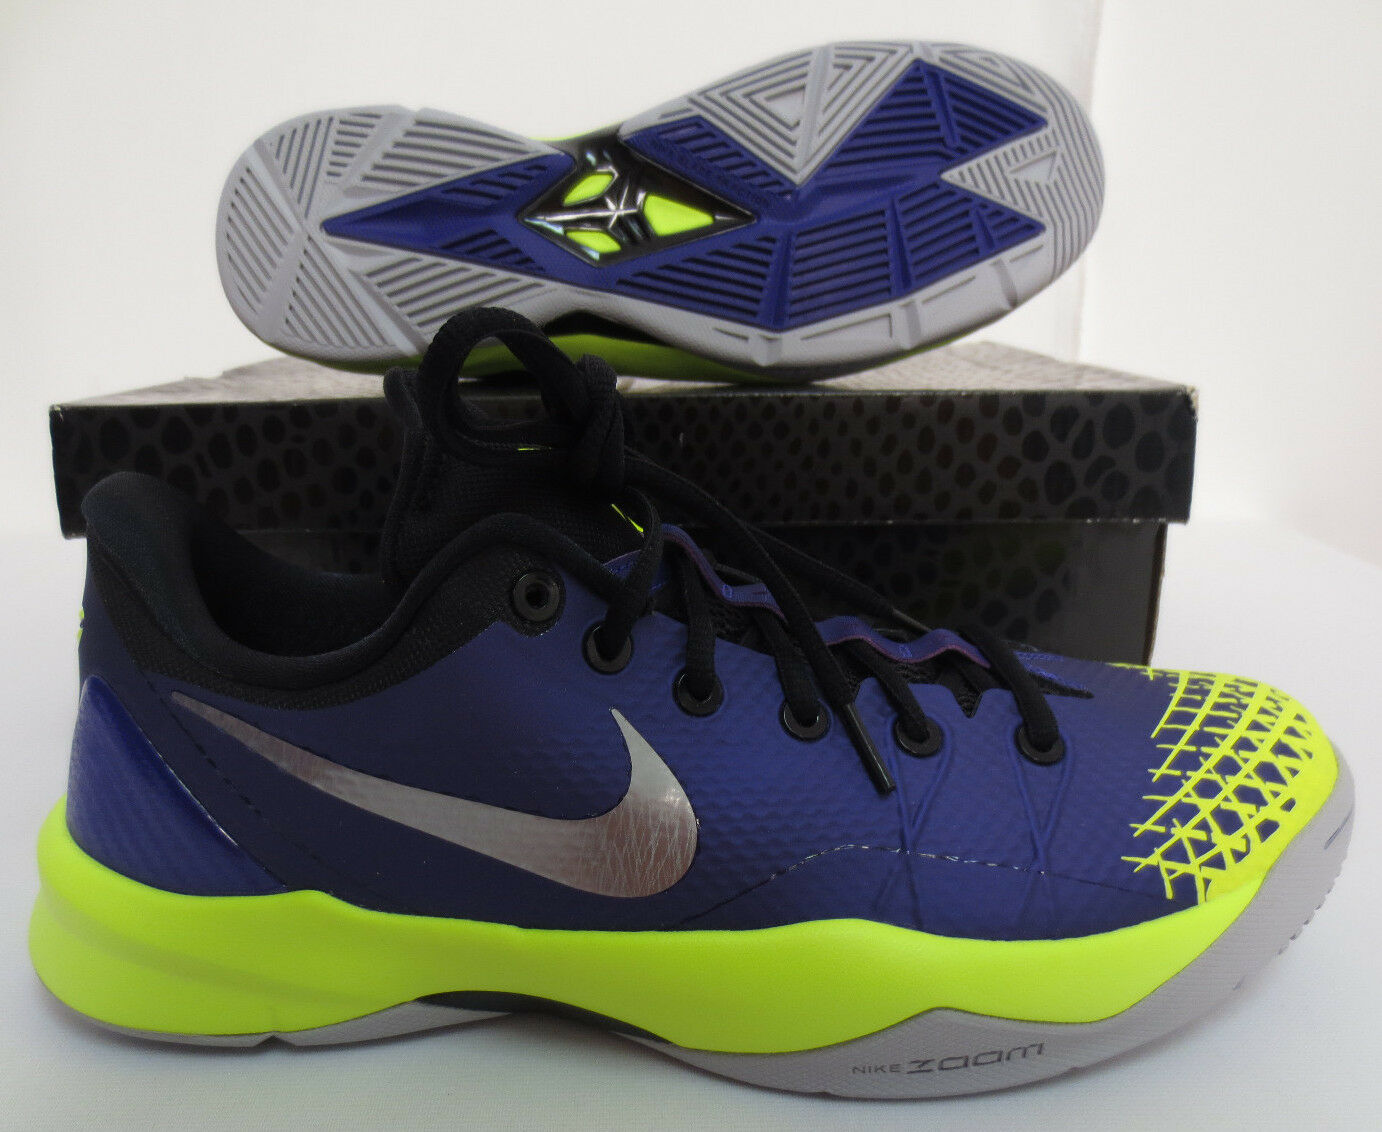 NIKE ZOOM KOBE VENOMENON 4 MENS SIZE 12 BASKETBALL SNEAKERS SHOES 635578 500 NEW